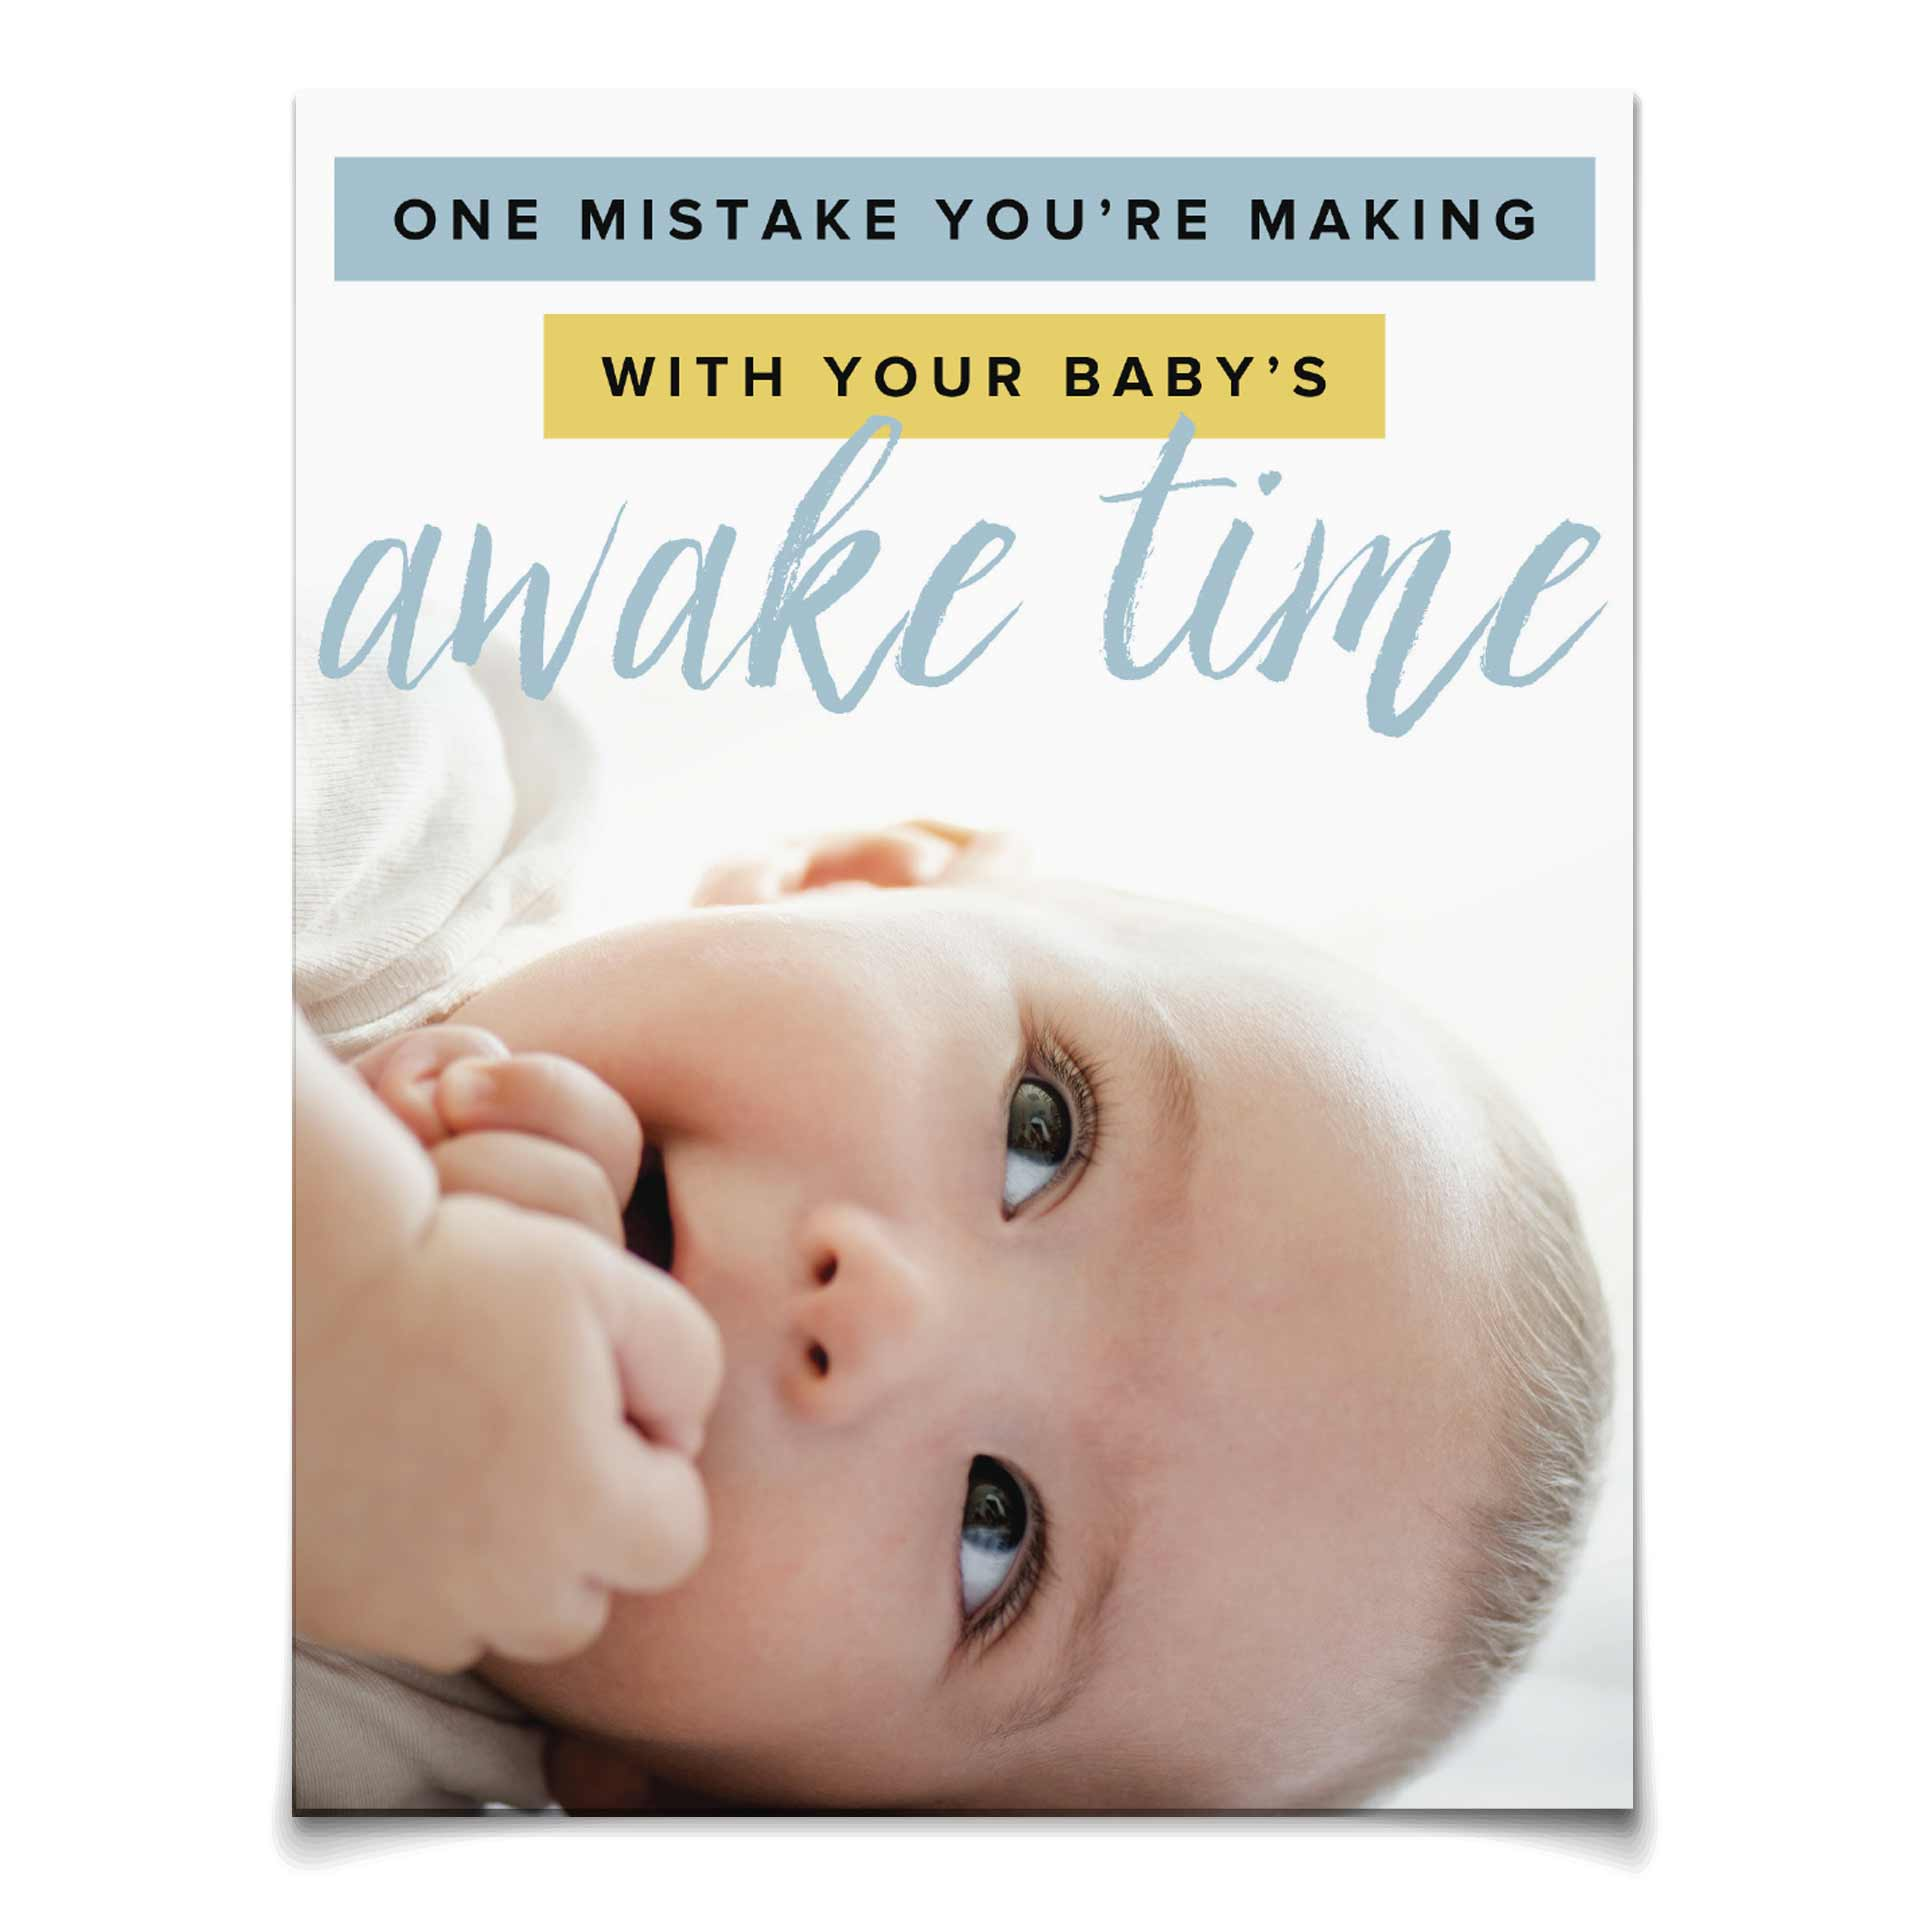 One Mistake You're Making with Your Baby's Awake Time